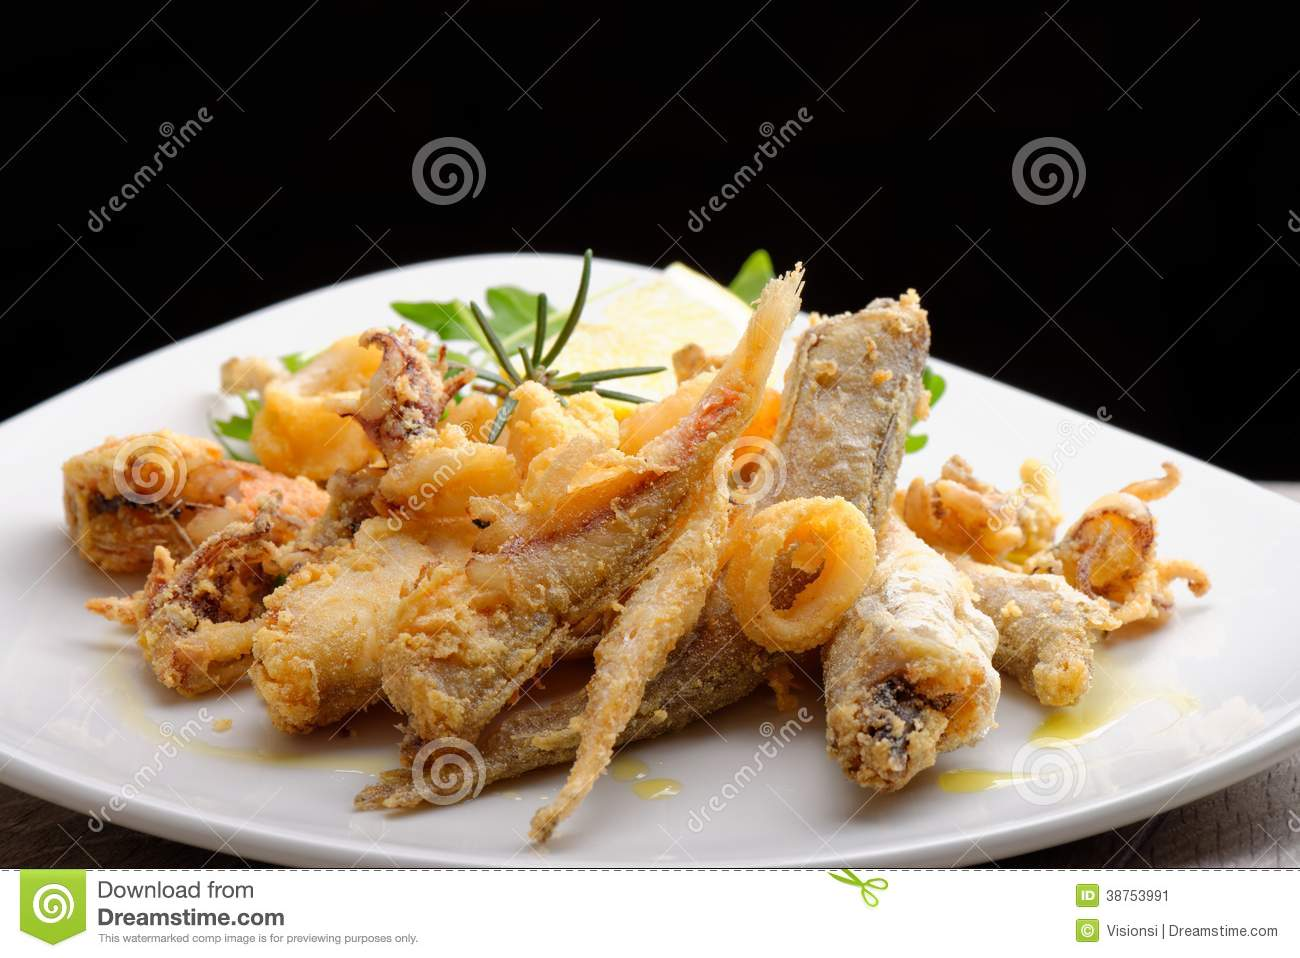 A portion of mixed fried fish stock image image 38753991 for Fried fish restaurants